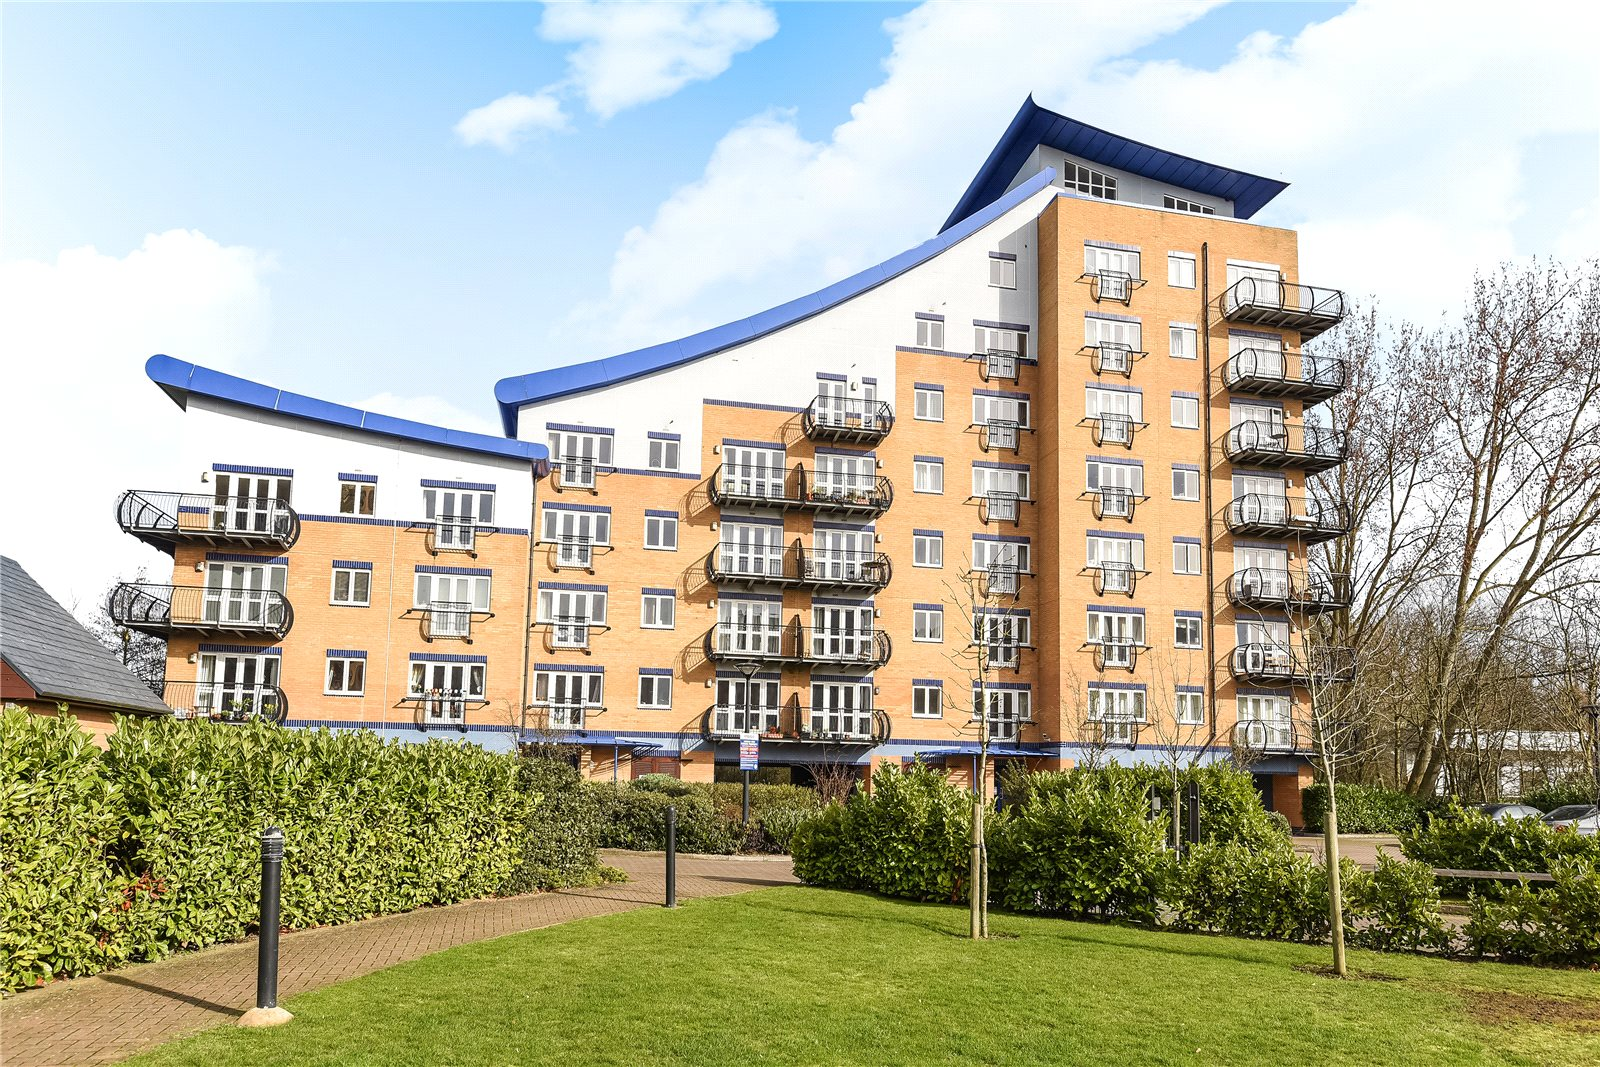 3 Bedrooms Apartment Flat for rent in Luscinia View, Napier Road, Reading, Berkshire, RG1